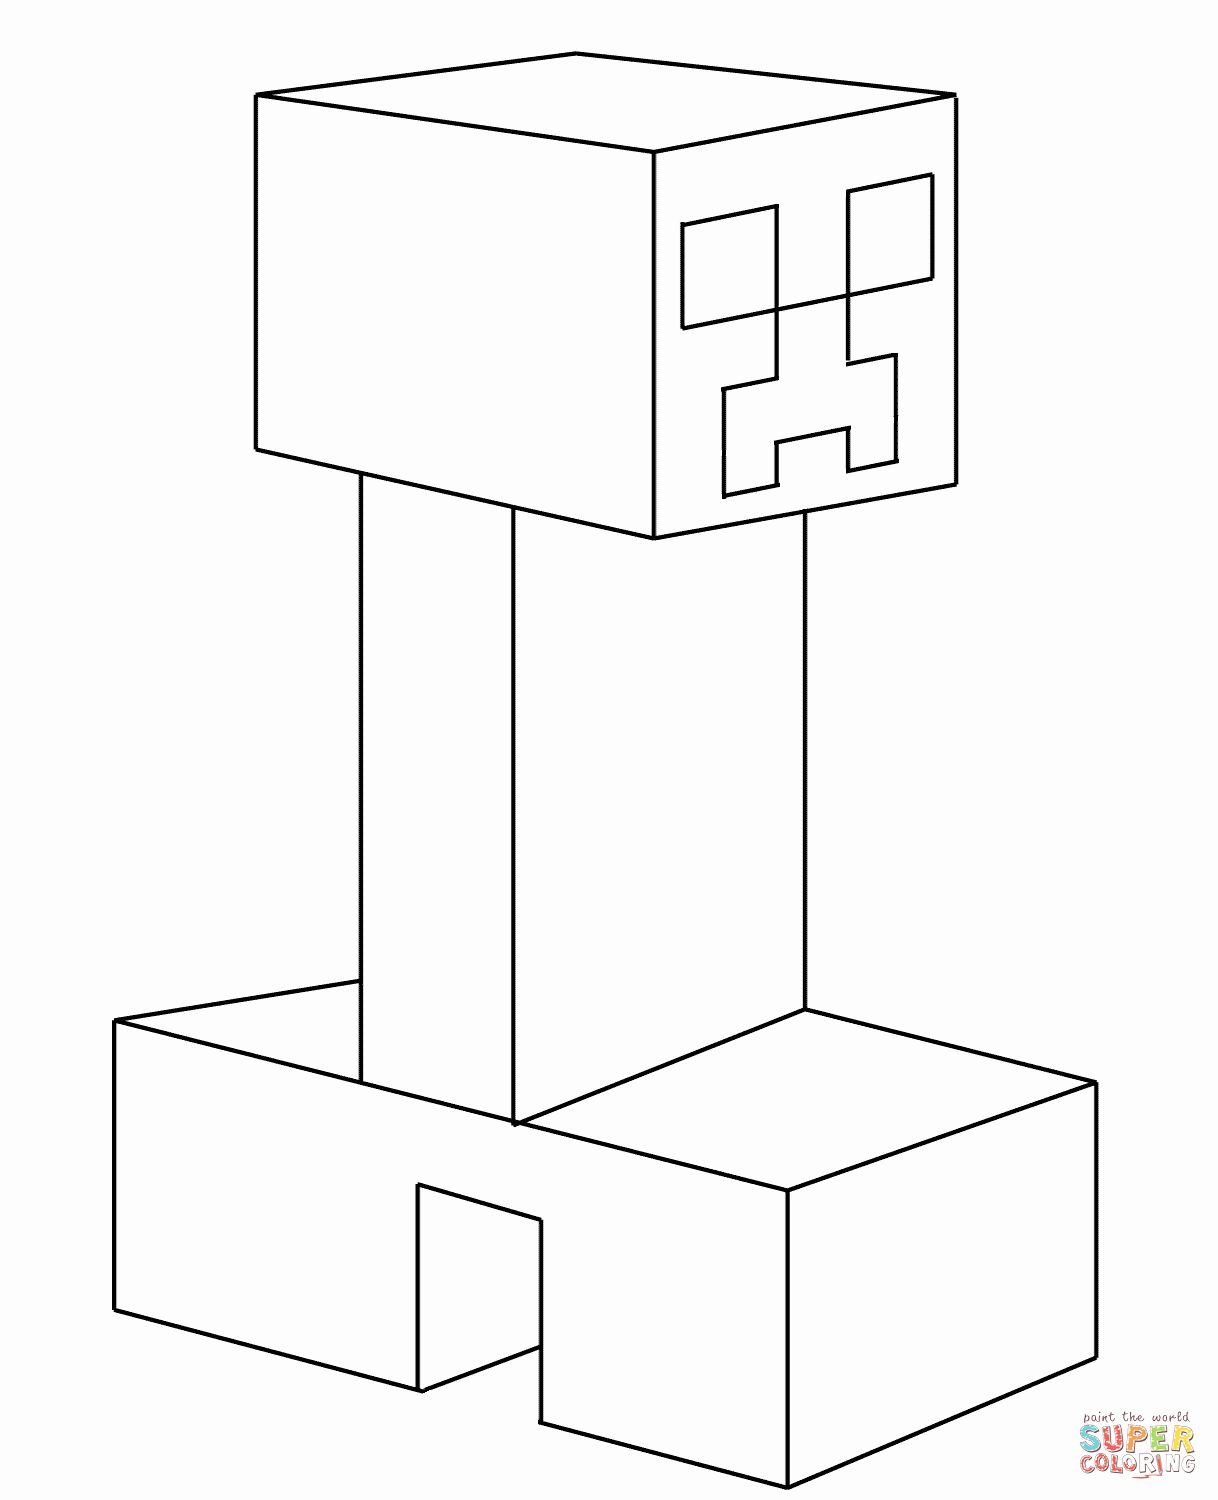 coloring minecraft creeper creeper from minecraft coloring page free coloring pages minecraft coloring creeper